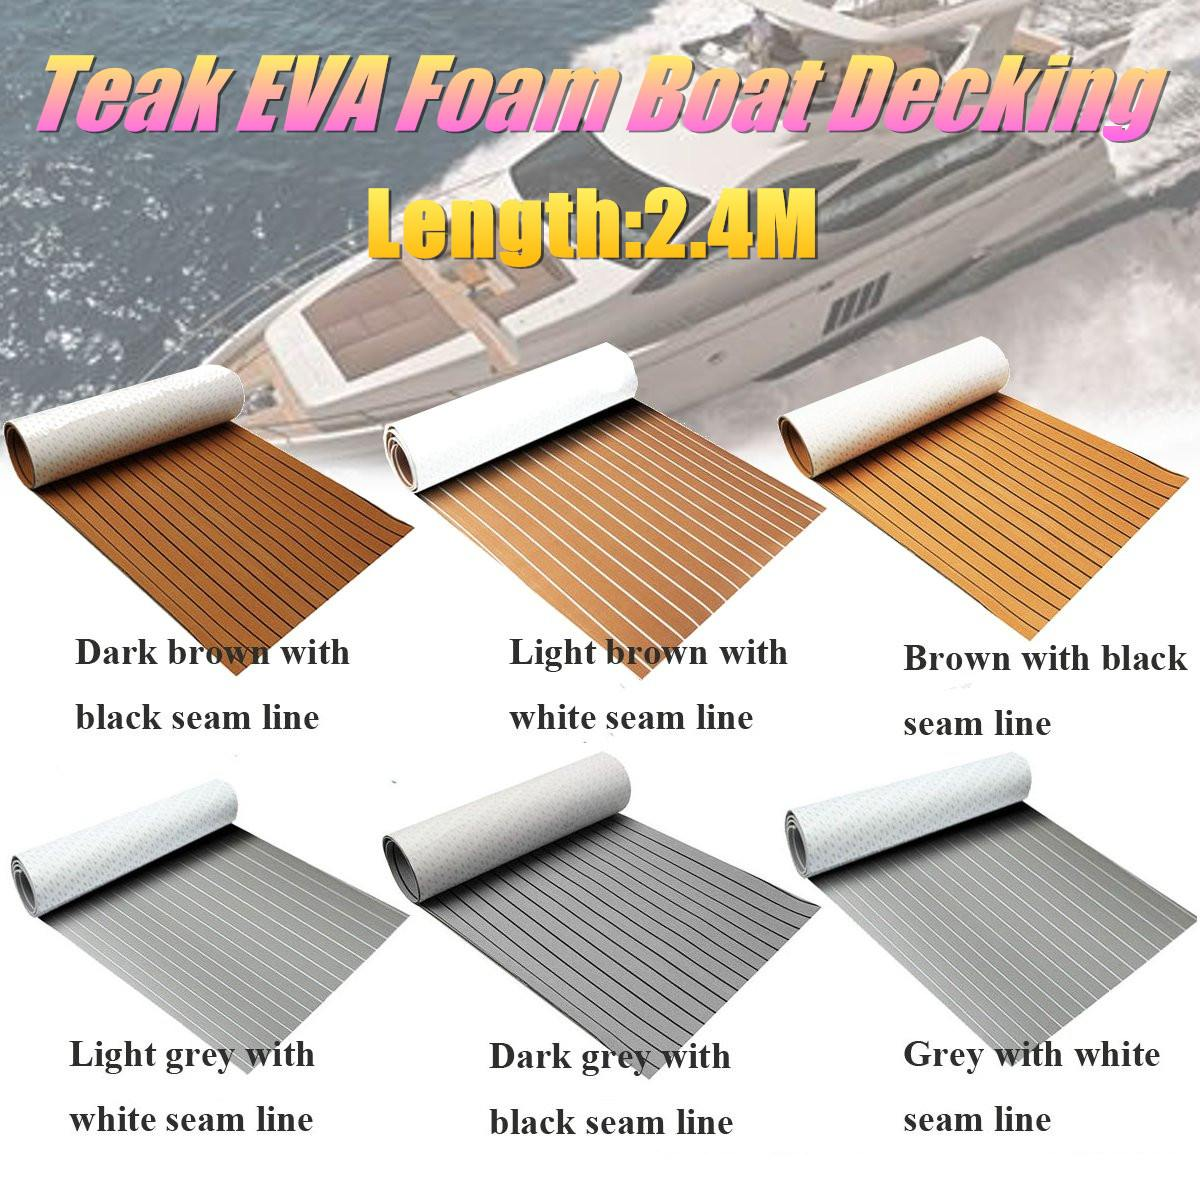 6 Styles Self-Adhesive Foam Teak Decking EVA Foam Marine Flooring Faux Boat Decking Sheet Accessories Marine Brown Black6 Styles Self-Adhesive Foam Teak Decking EVA Foam Marine Flooring Faux Boat Decking Sheet Accessories Marine Brown Black